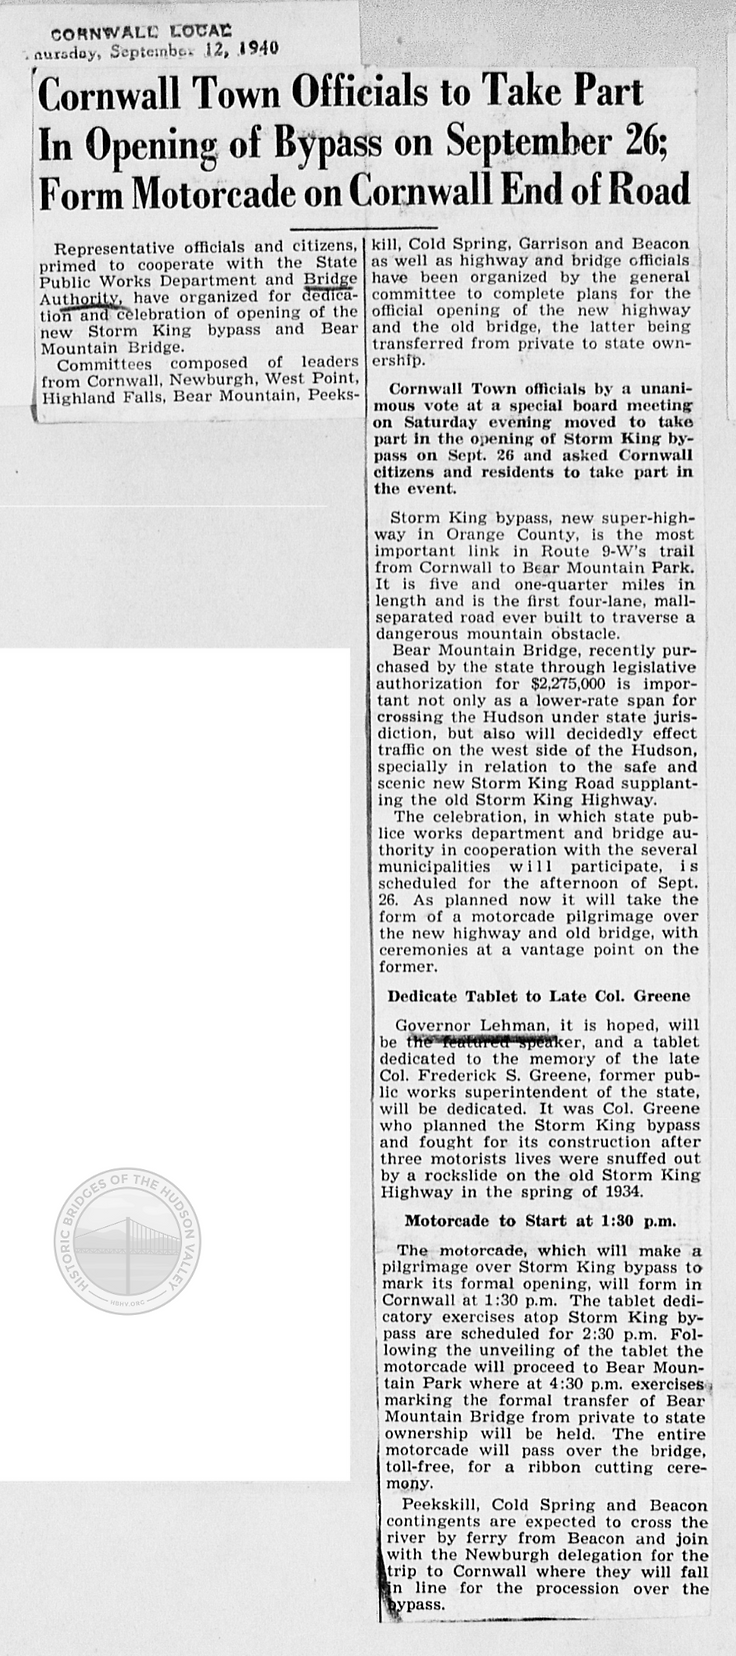 Cornwall Local - September 12, 1940.png